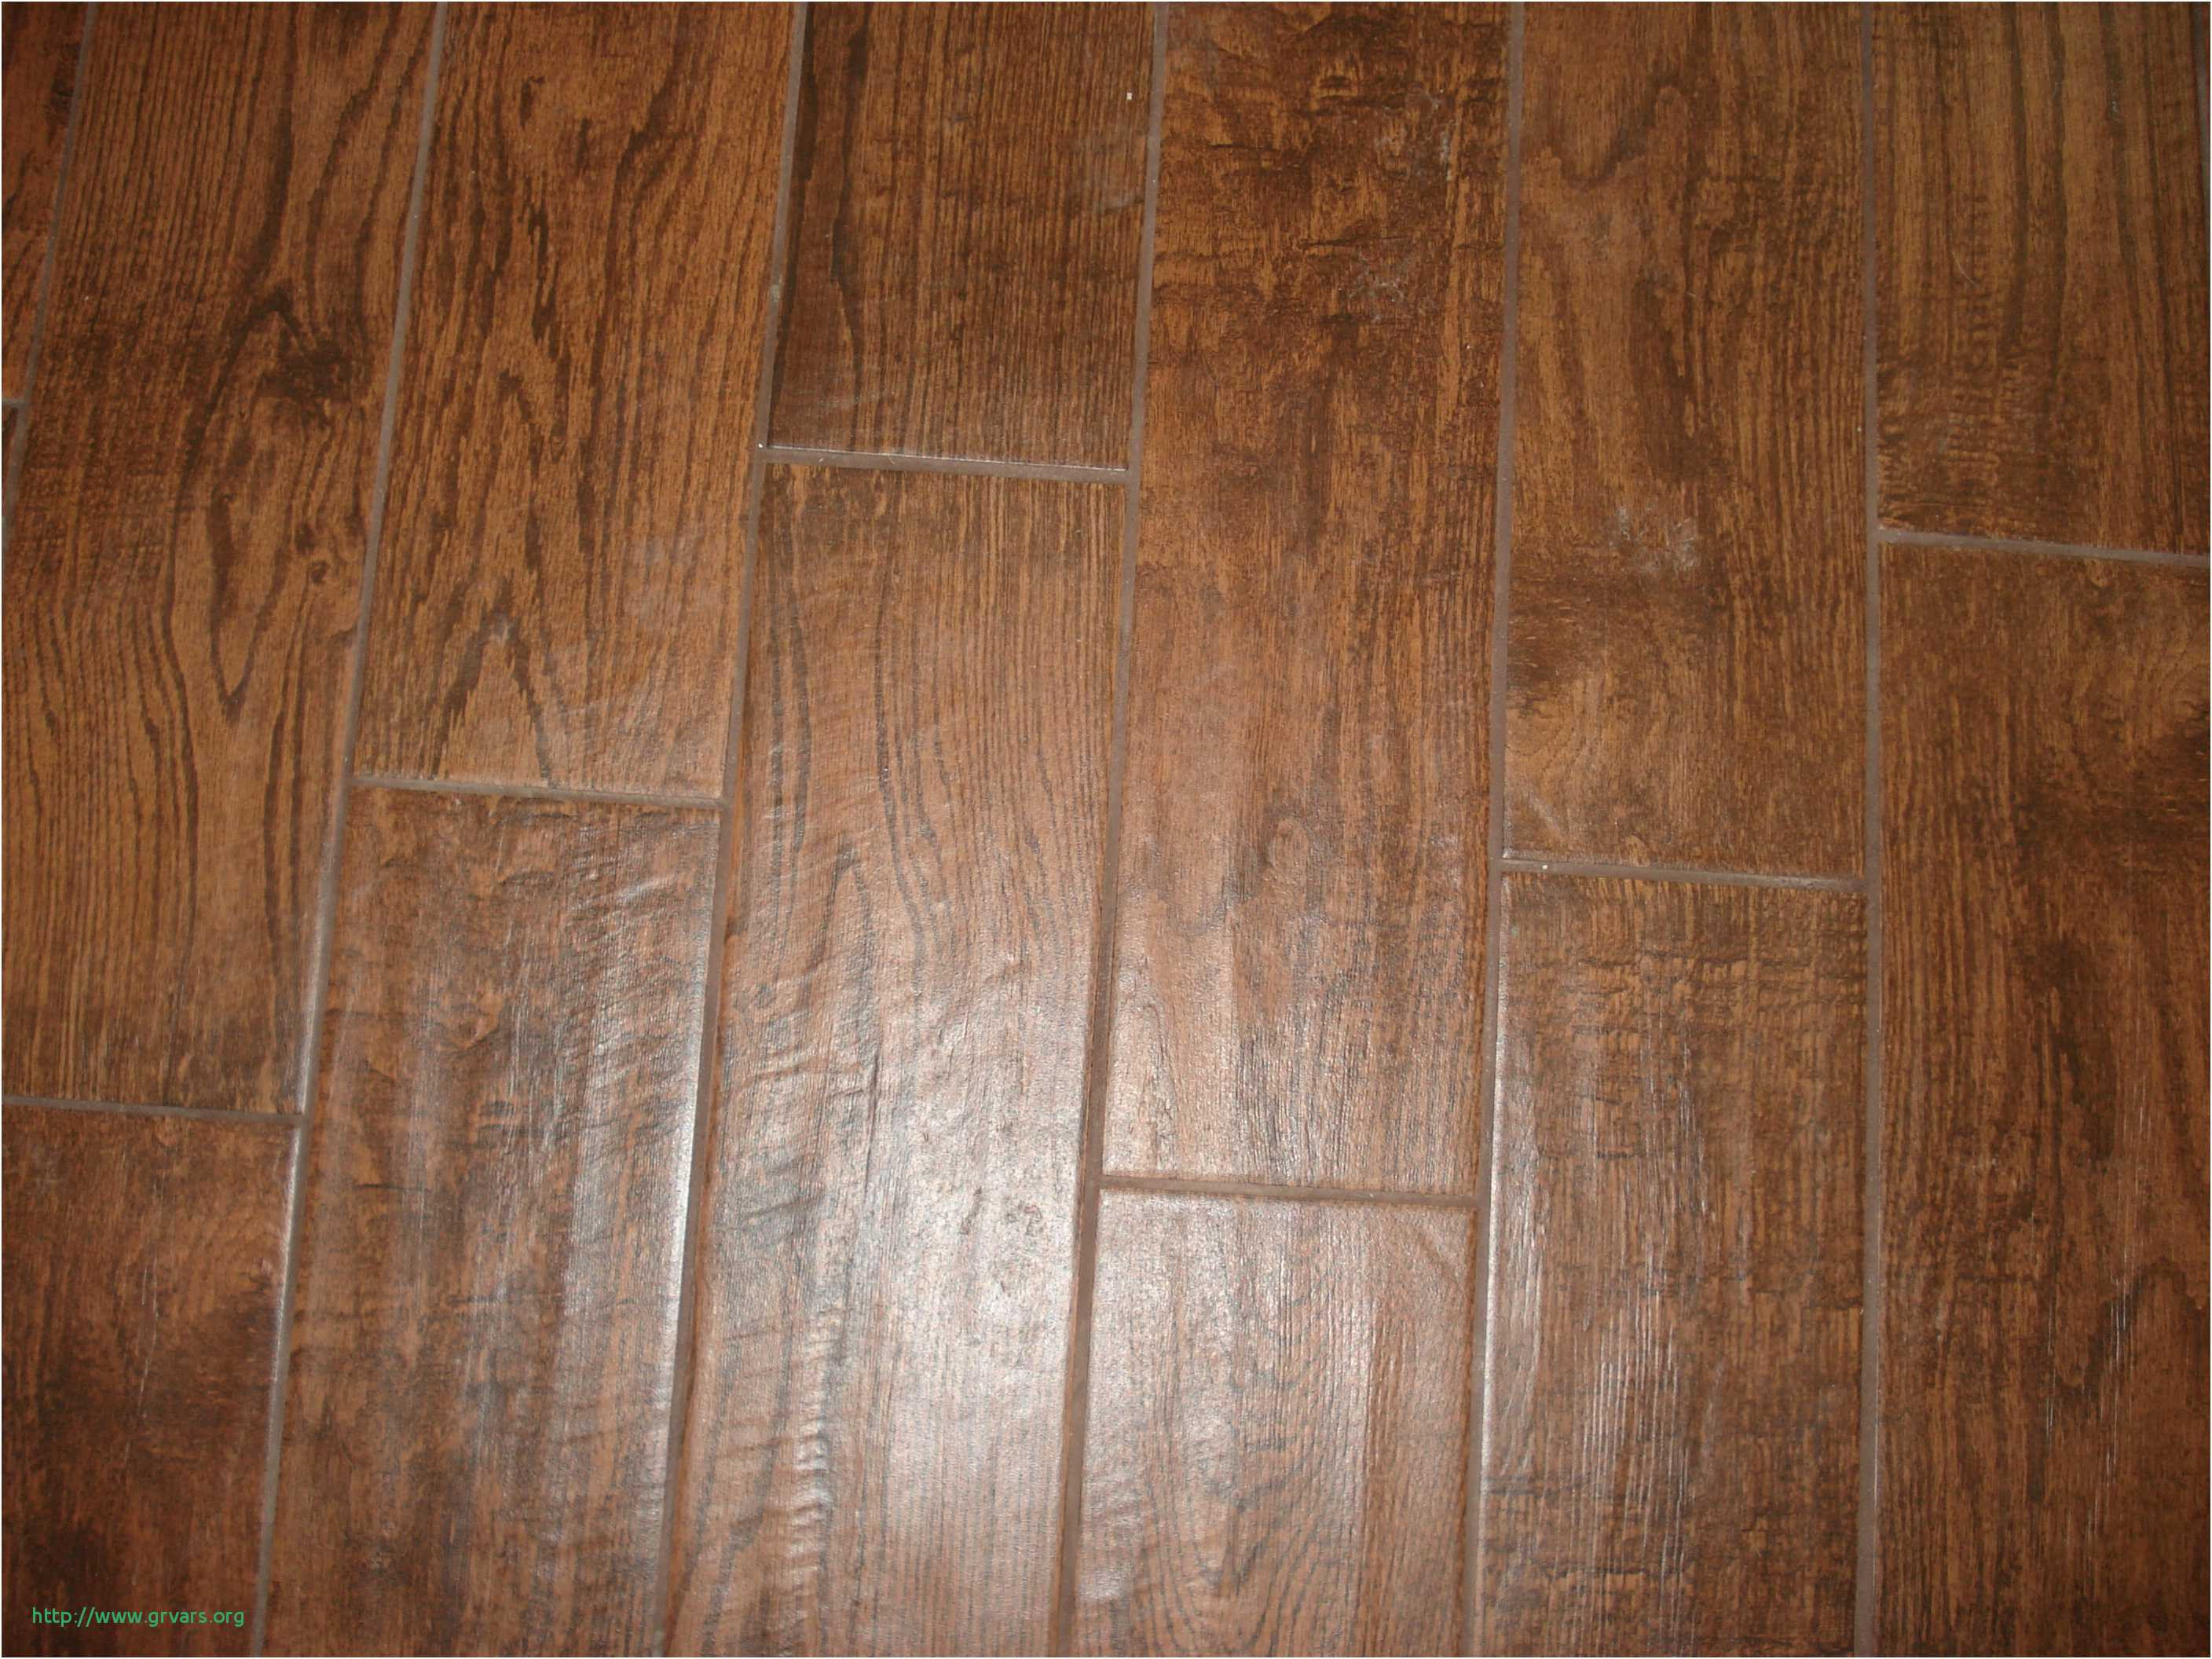 home depot laminate hardwood flooring of 16 a‰lagant hardwood flooring depot calgary ideas blog within hardwood flooring depot calgary unique home depot hardwood flooring installation cost awesome installing